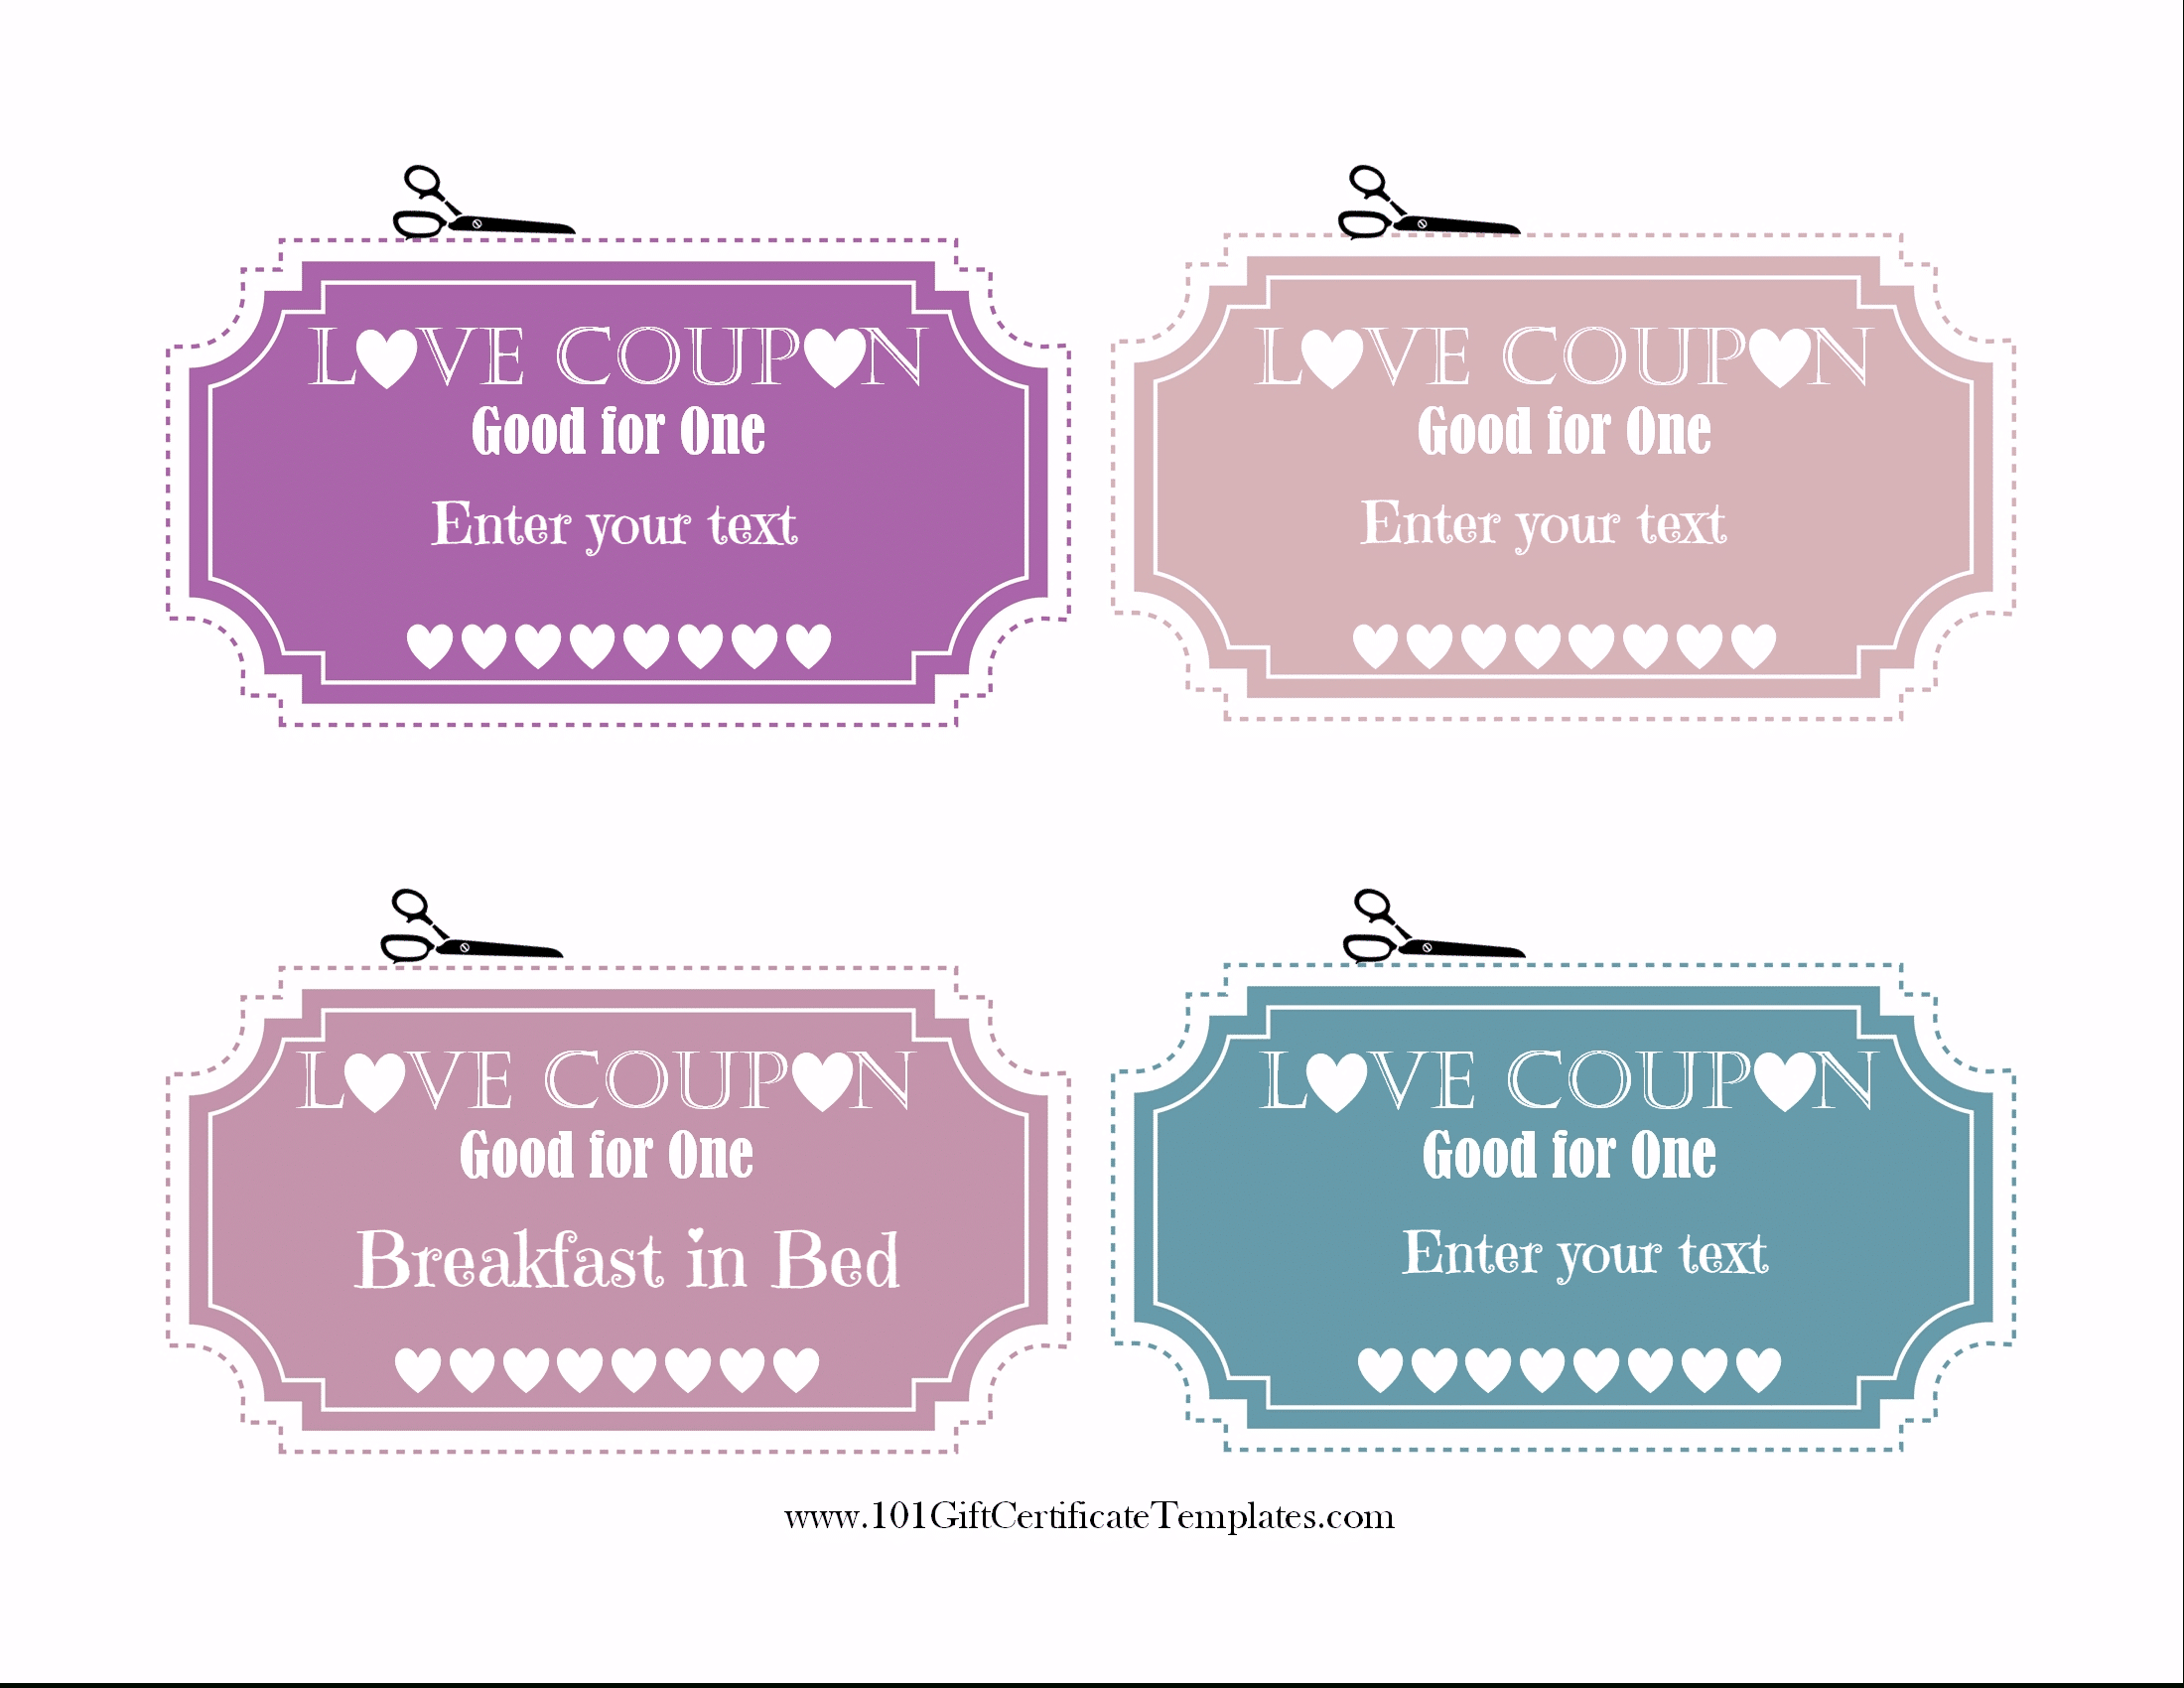 Free Editable Love Coupons For Him Or Her - Love Coupons For Him Printable Free